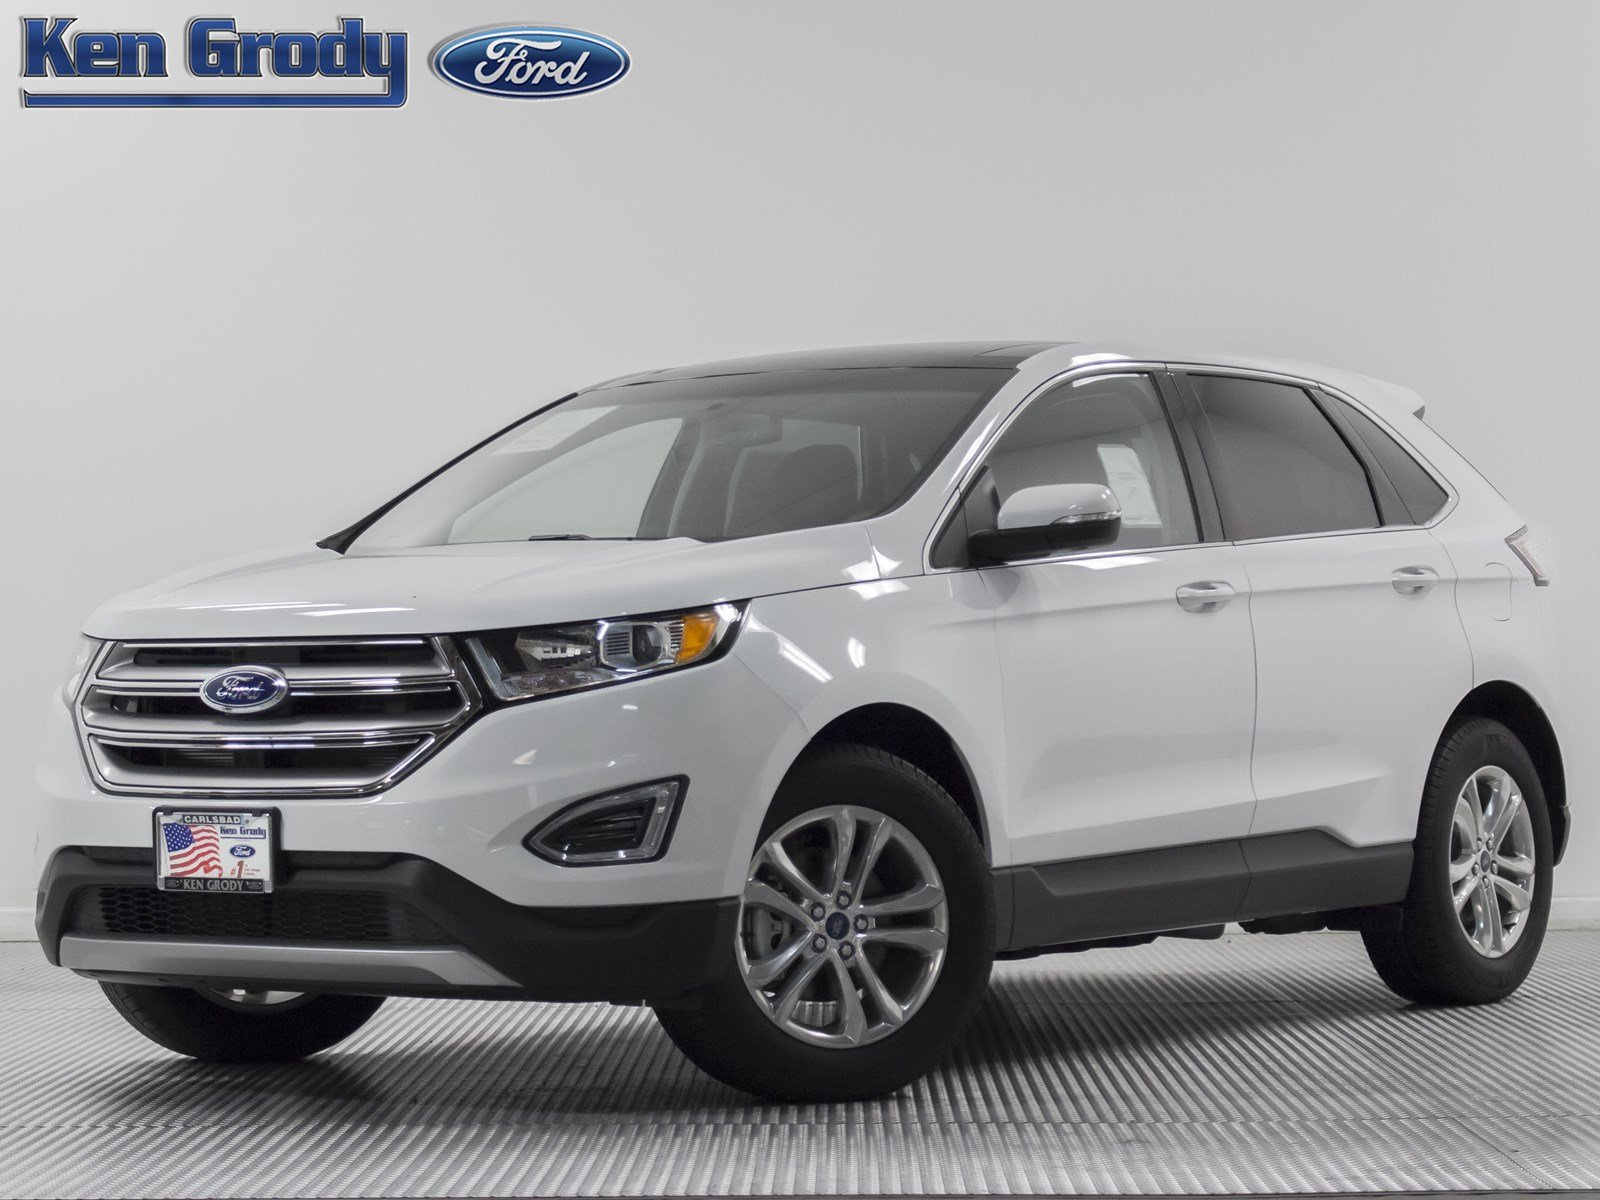 New 2017 Ford Edge SEL Sport Utility in Buena Park 84881  Ken